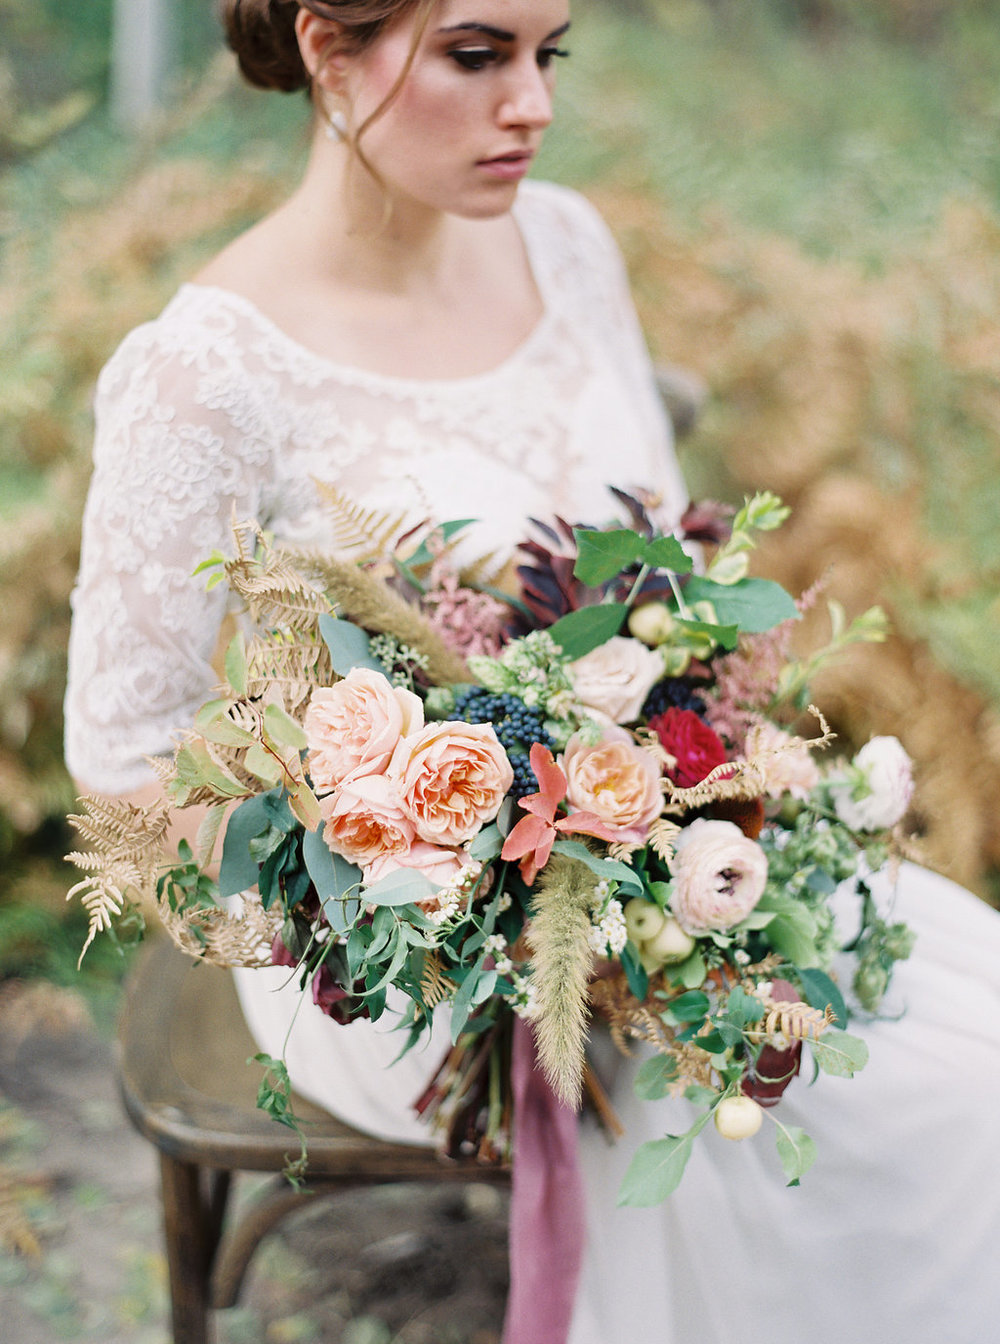 Loose, organic bridal bouquet with garden roses, berries, and hops // Nashville Floral Designer